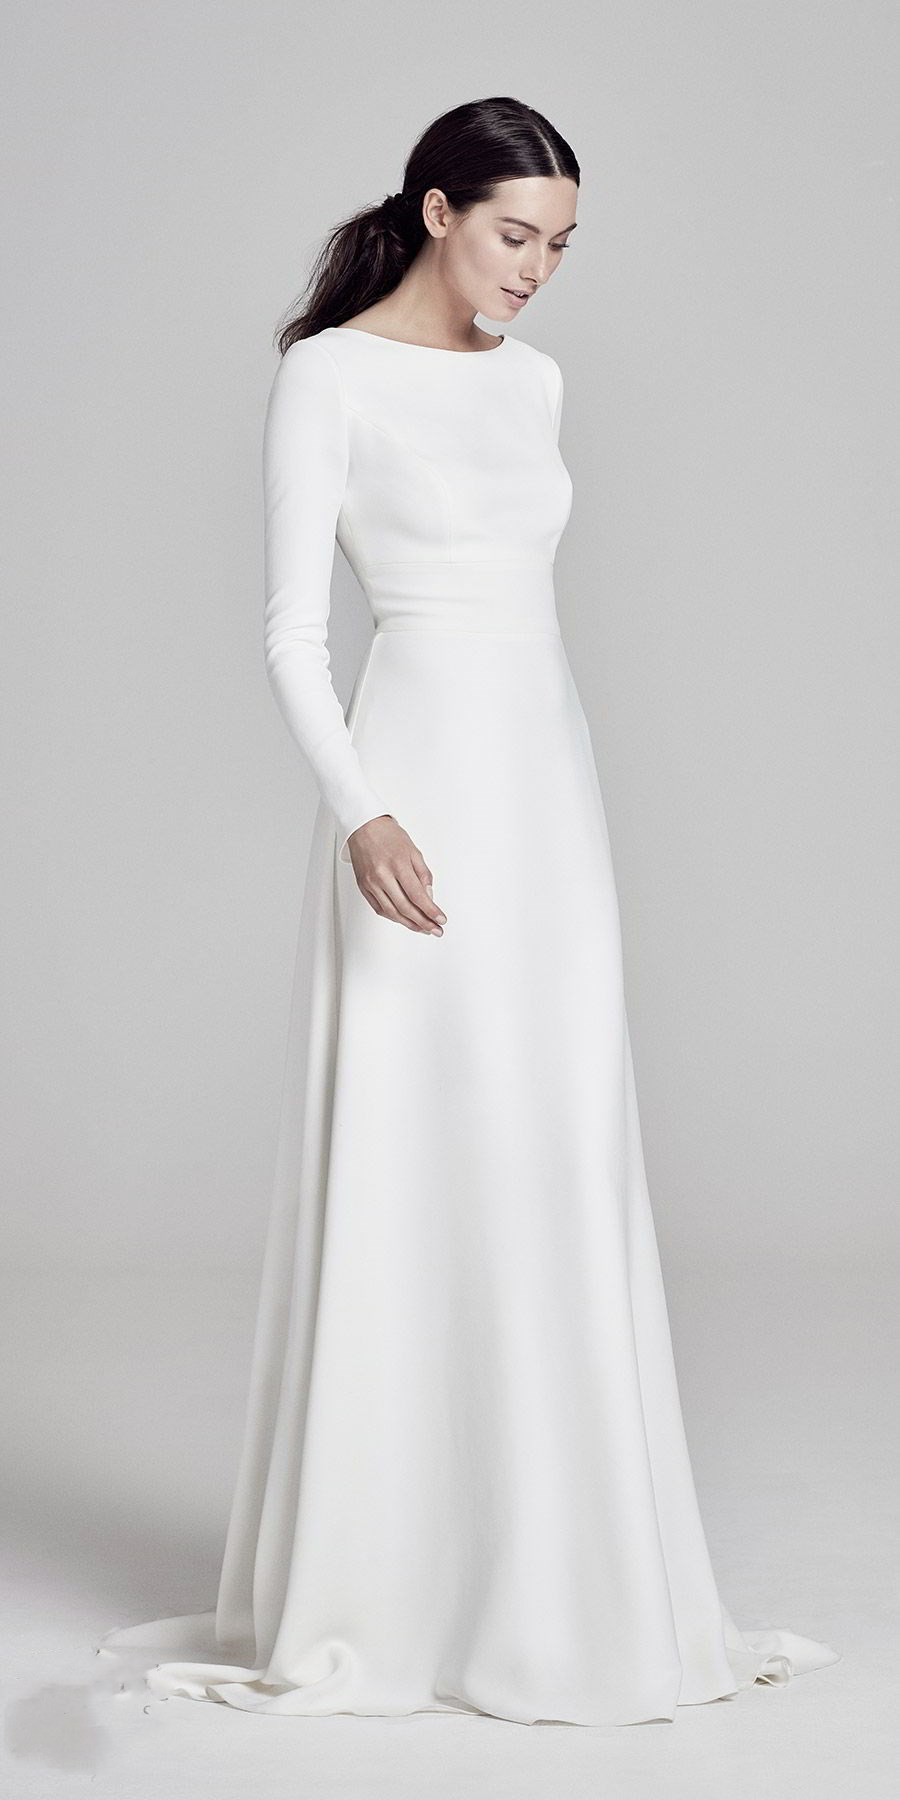 Simple Elegant Satin Floor Length Wedding Dress Round Neck Long Sleeves Bridal Dress From Show Fashion